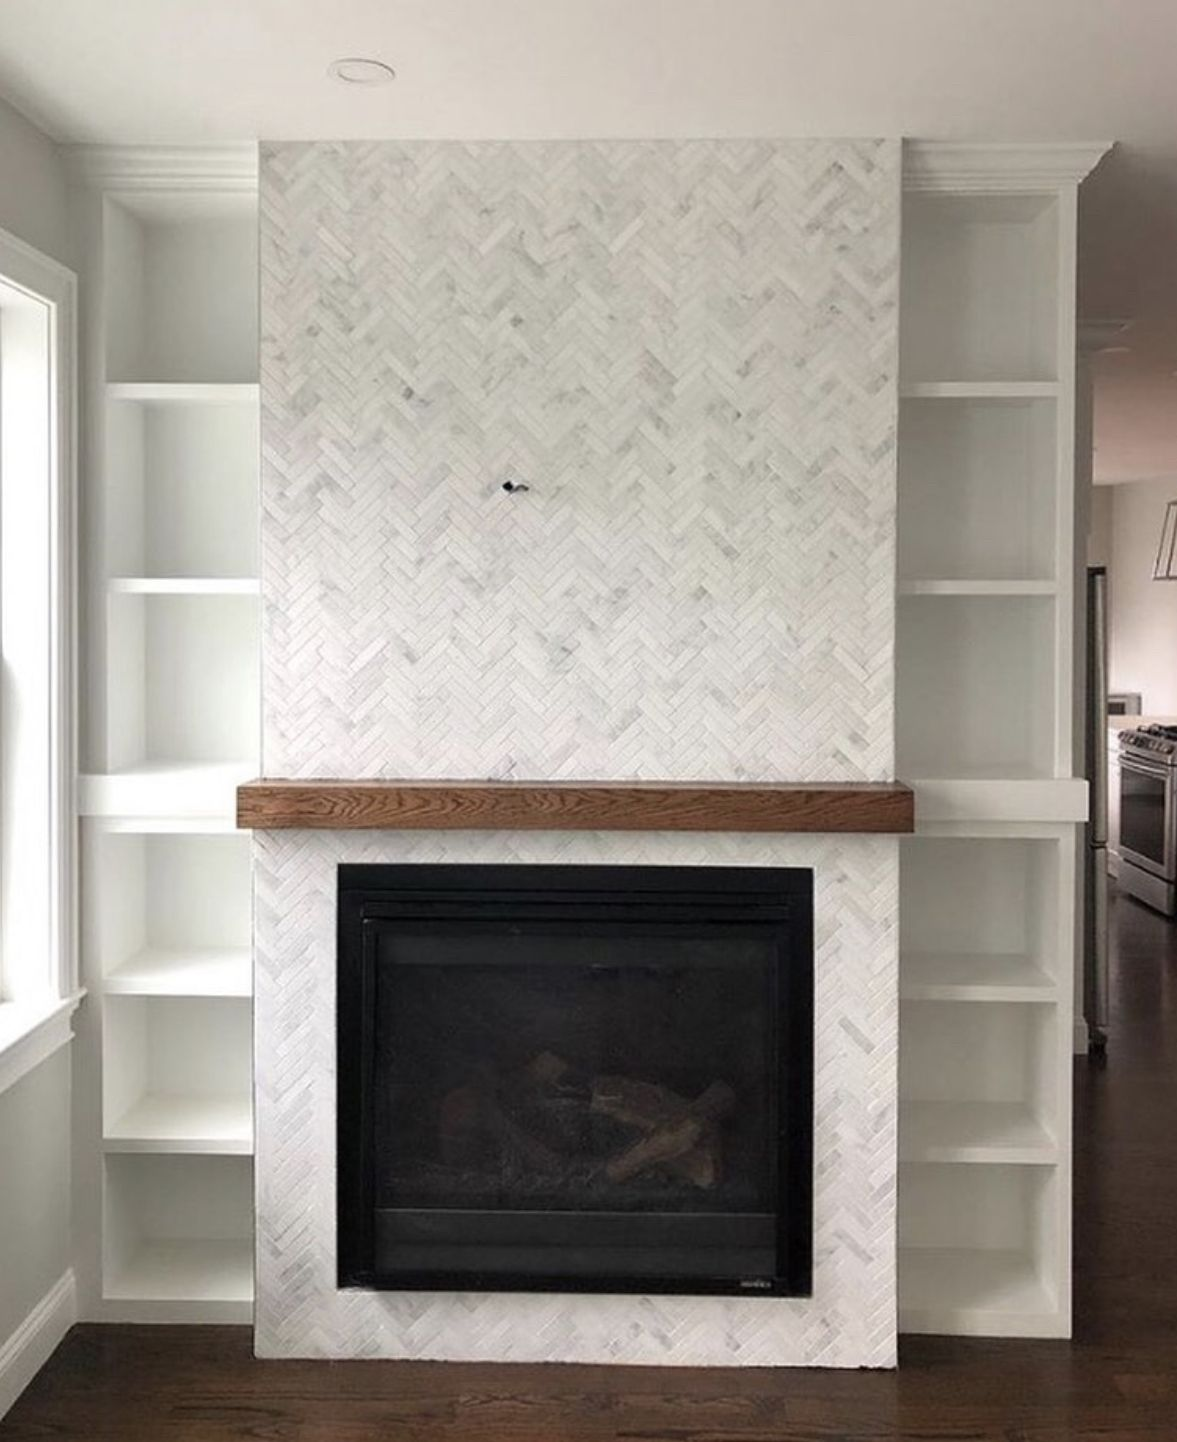 Riad Tile Marble Casablanca Carrara Tiled Fireplace Wall Fireplace Tile Surround Home Fireplace